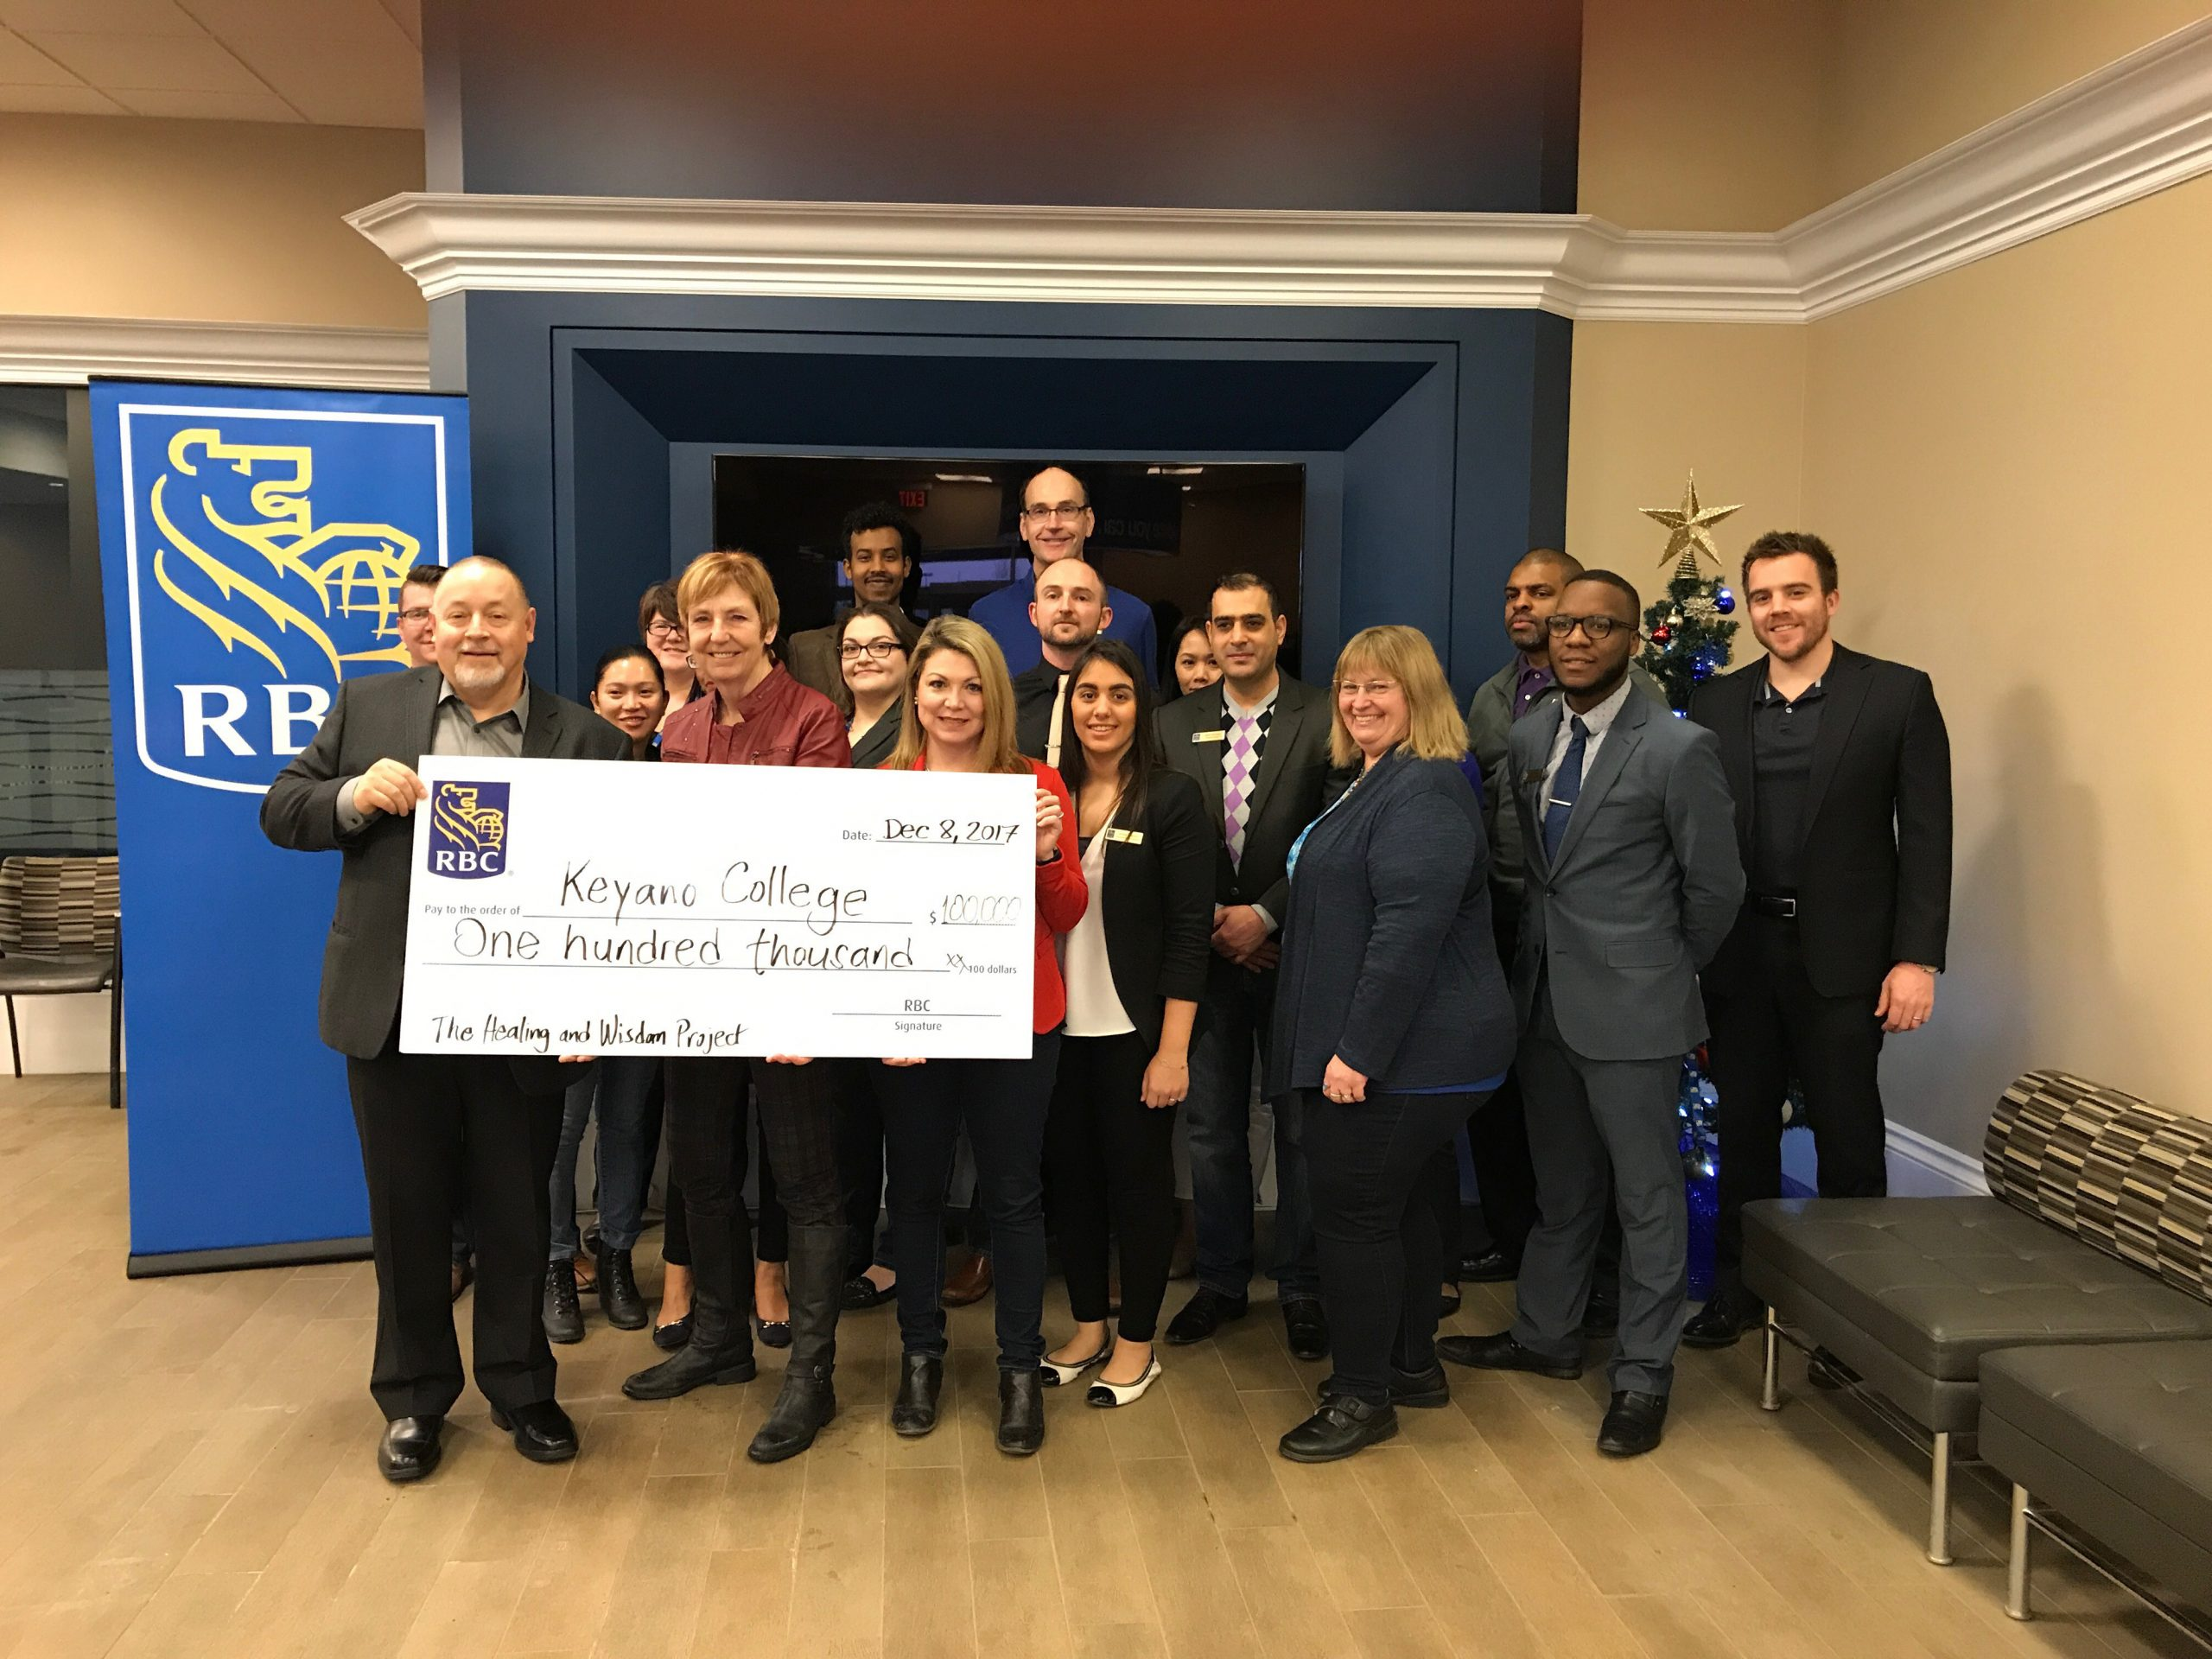 Keyano College Receiving $100K Donation to Help Indigenous Communities